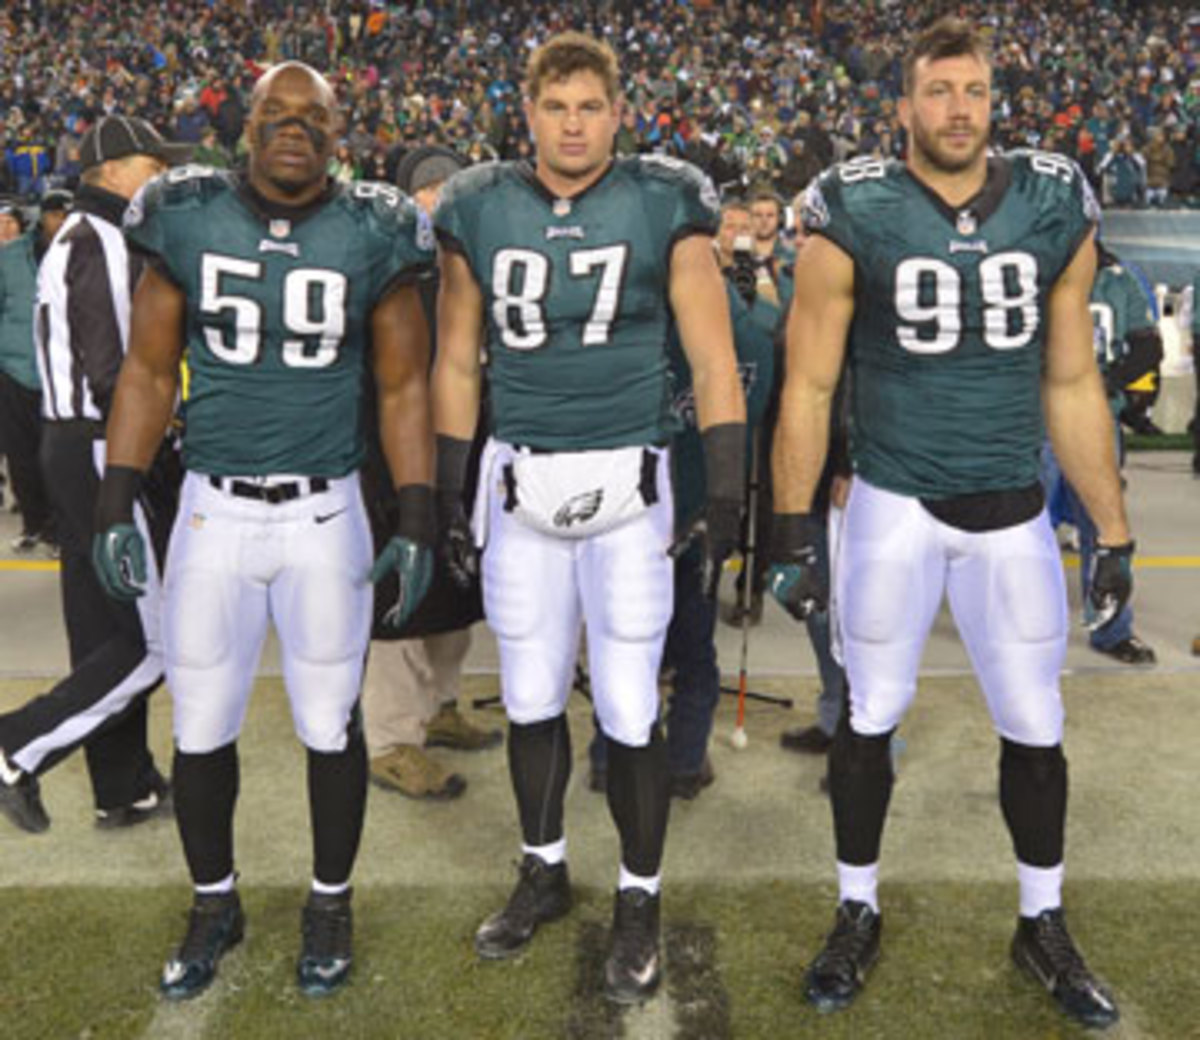 DeMeco Ryans, Brent Celek and Connor Barwin, Philly's captains for the January playoff game against the Saints. (Drew Hallowell/Getty Images)